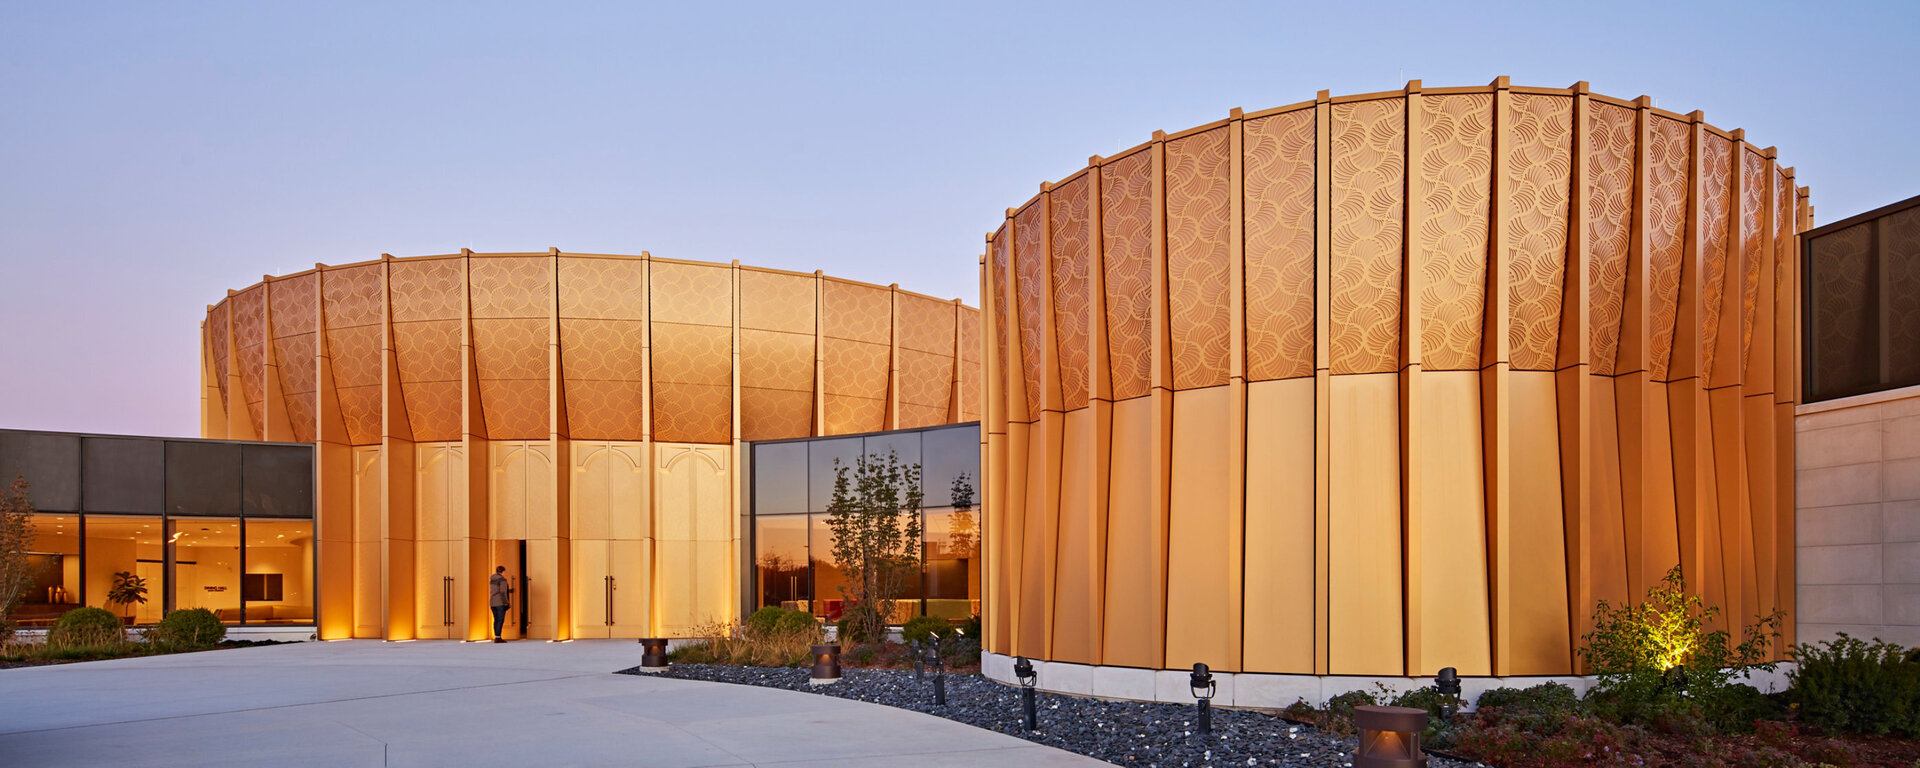 The approved Sherwin Williams Fluropon Classic II Light Gold and Dark Gold colors for Science of Spirituality's new Center were formulated using mica flake to enhance the vibrancy of the finished panel system.  Photo Credit: ©Tom Harris by Gensler